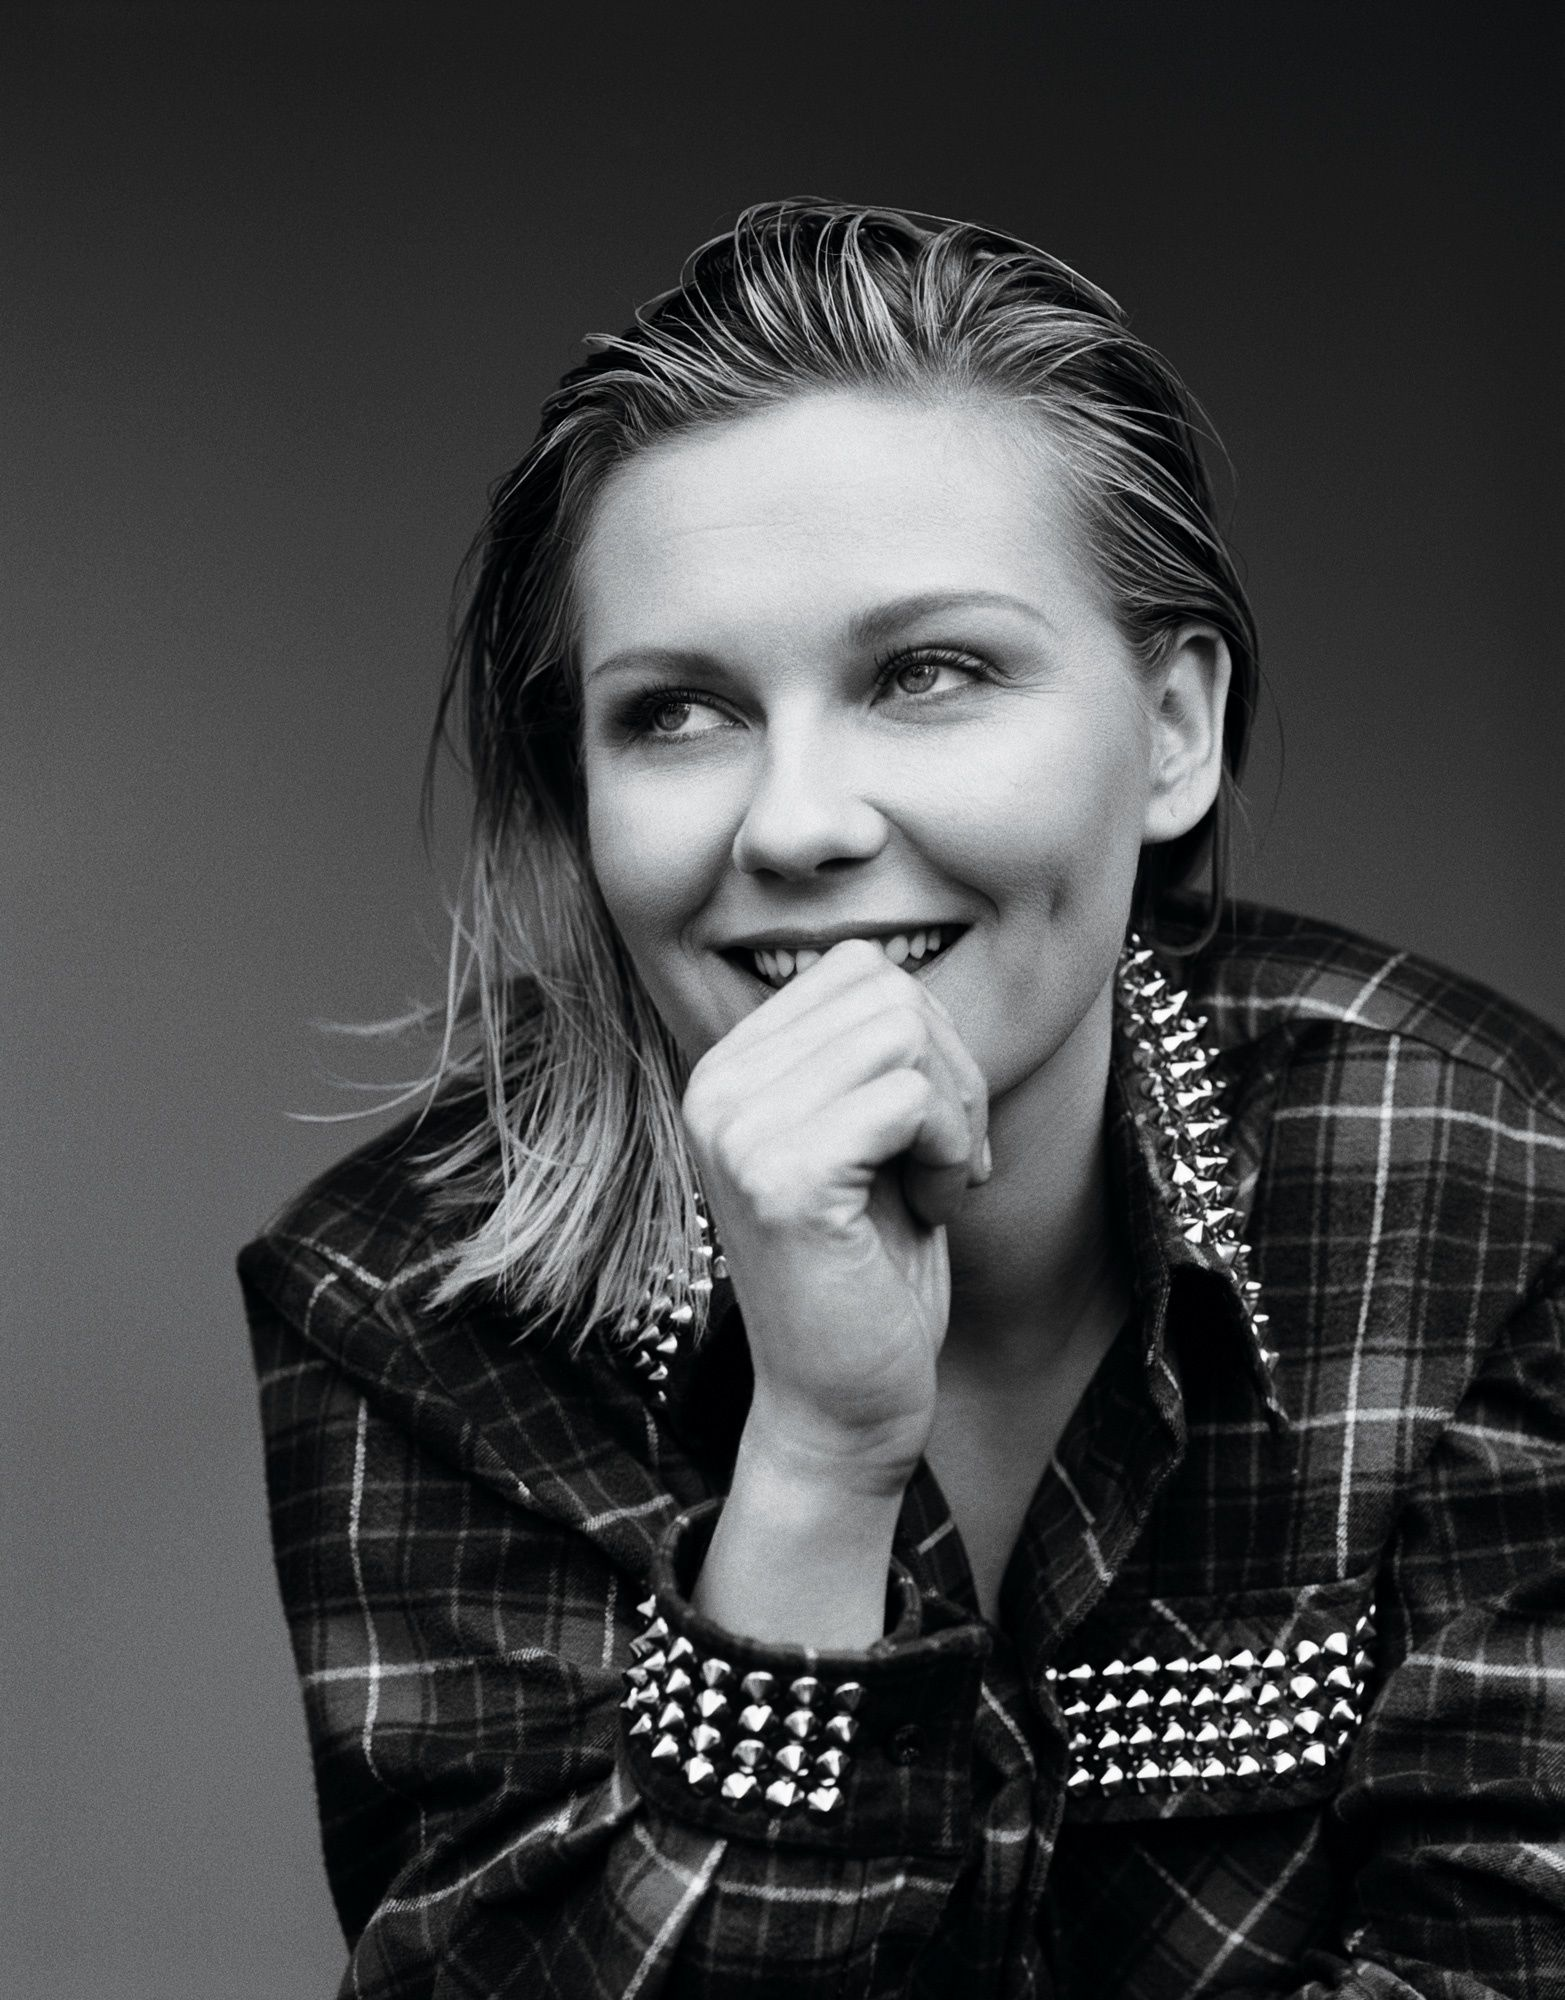 Black and white portrait of Kirsten Dunst.